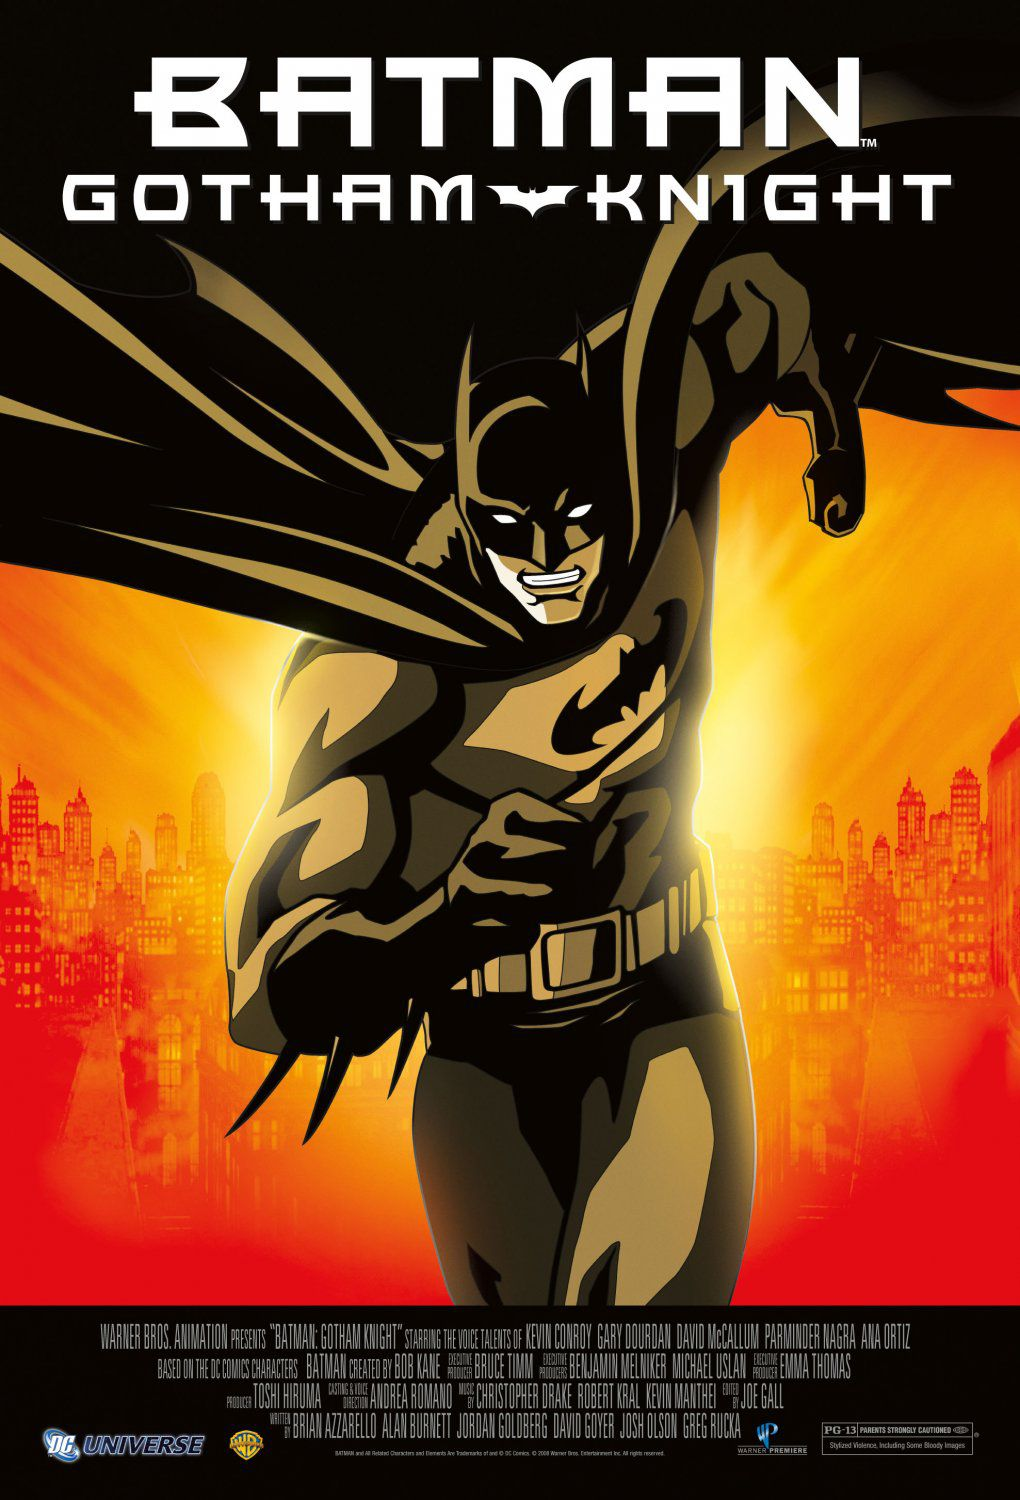 Batman animated - Gotham Knight (2008) - animated film poster